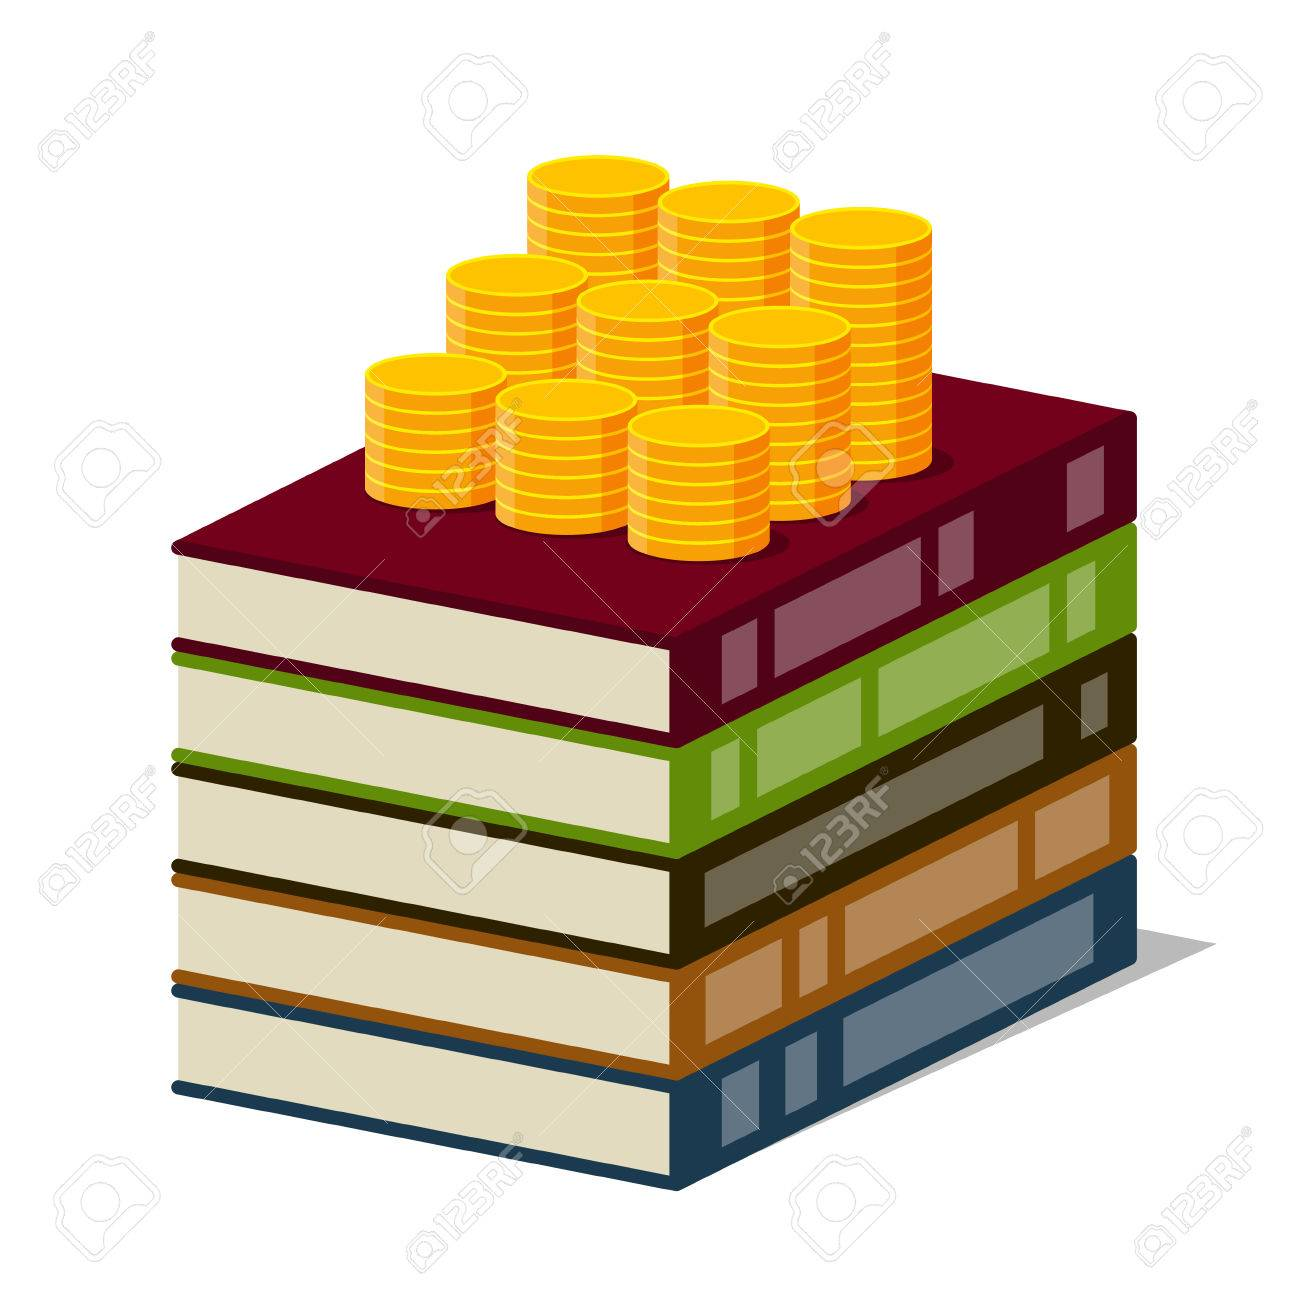 1300x1300 Stack Of Books With Color Covers And Columns Of Gold Coins